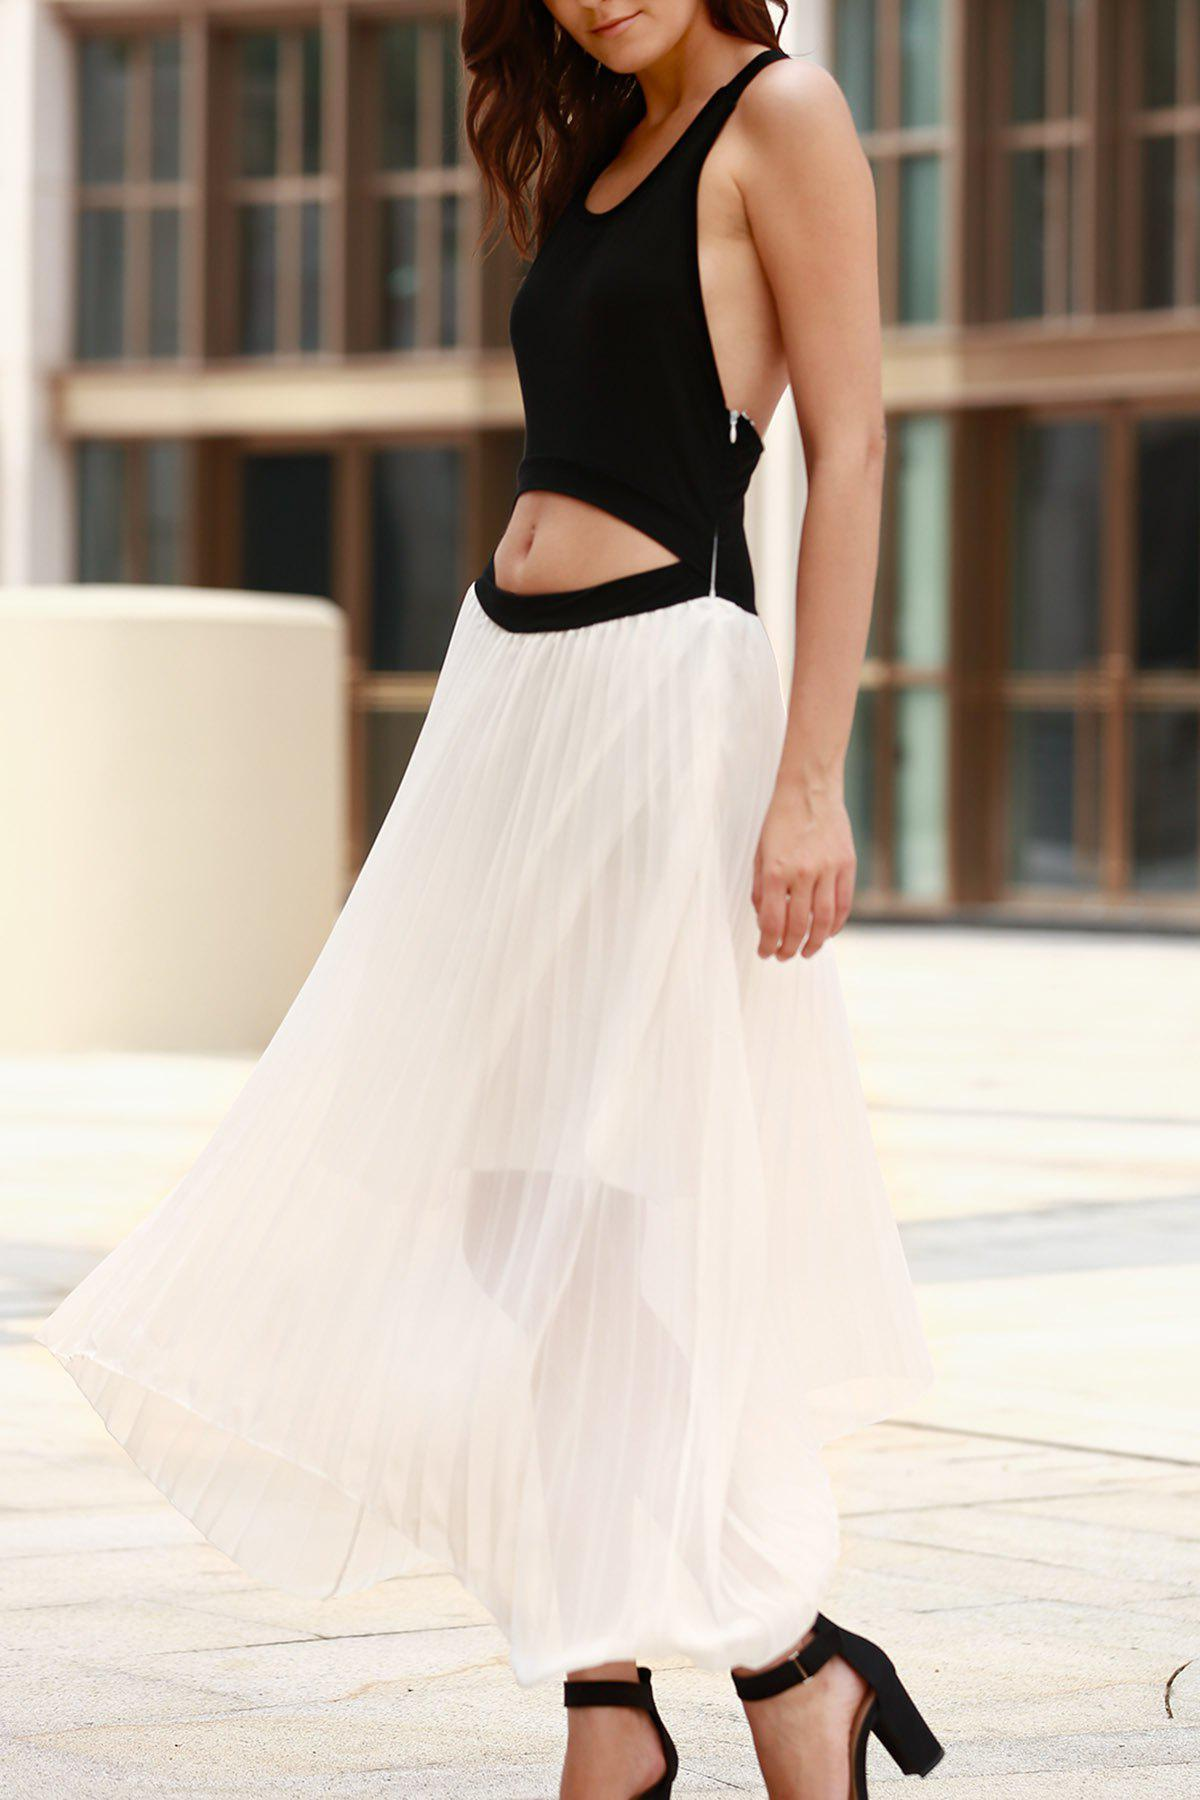 Fashionable Jewel Neck Color Block Splicing Backless Sleeveless Dress For Women - WHITE/BLACK S